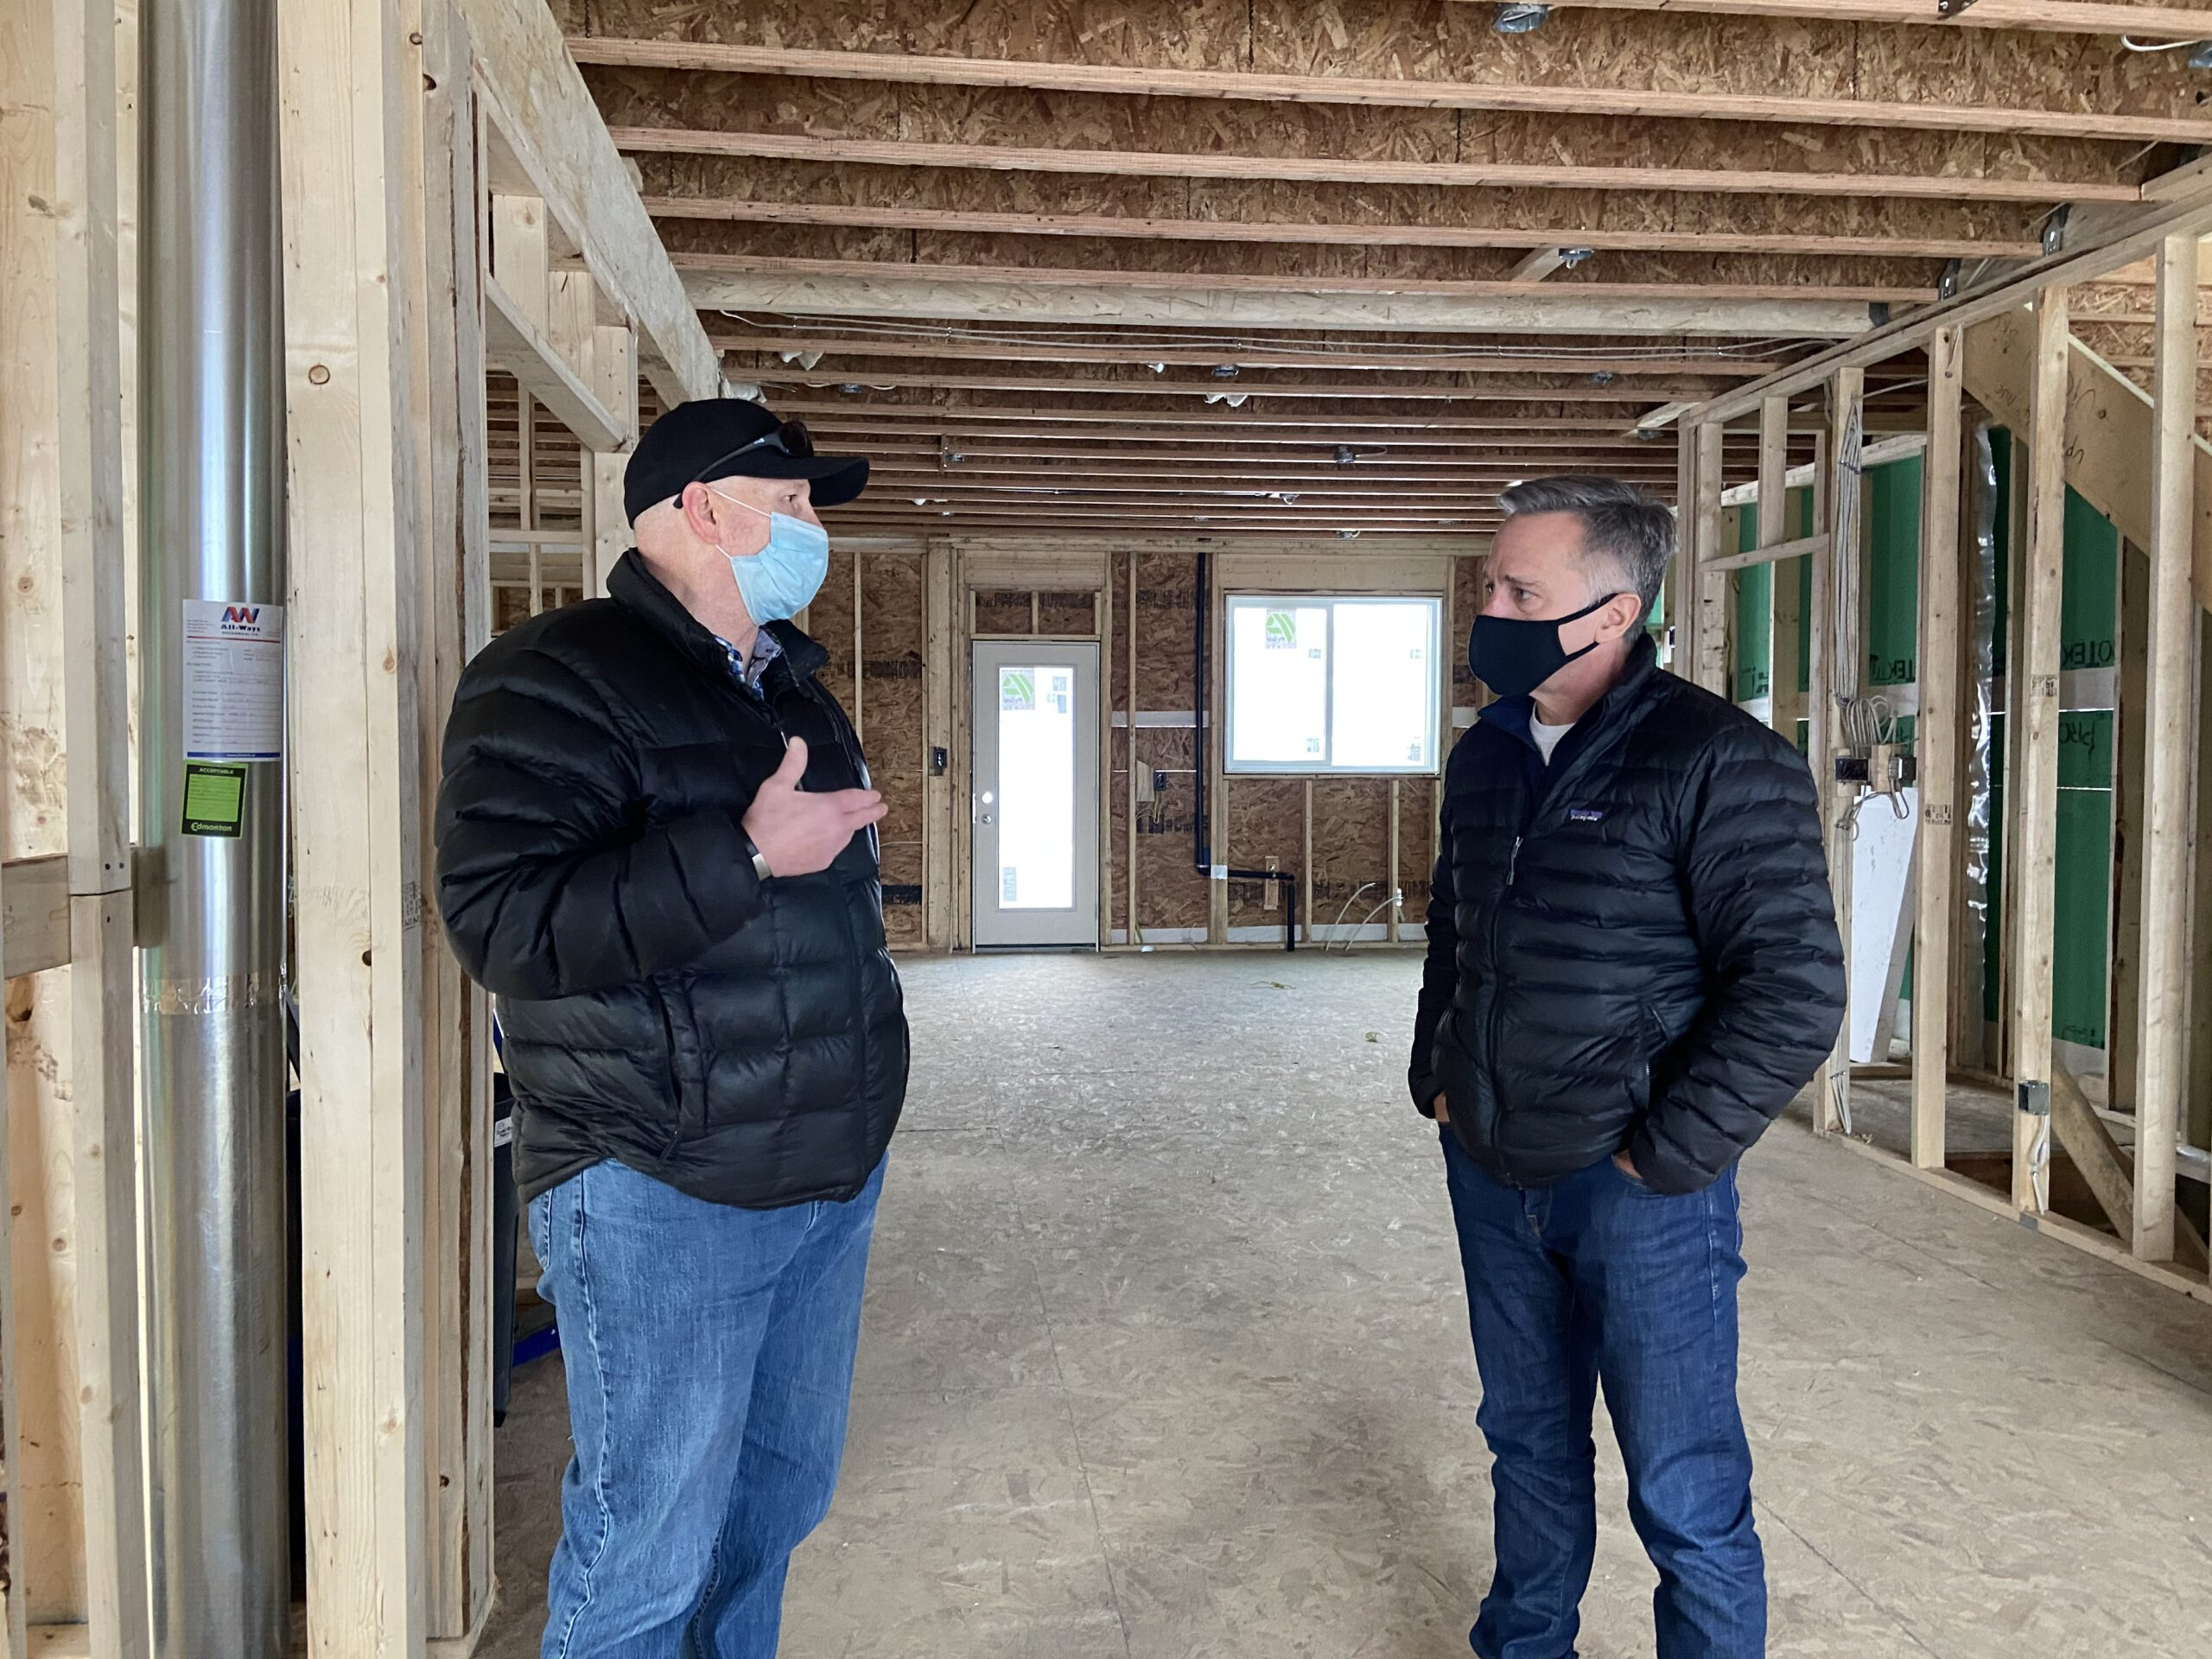 MP_James_Cumming_discussing_infill_at_build_site